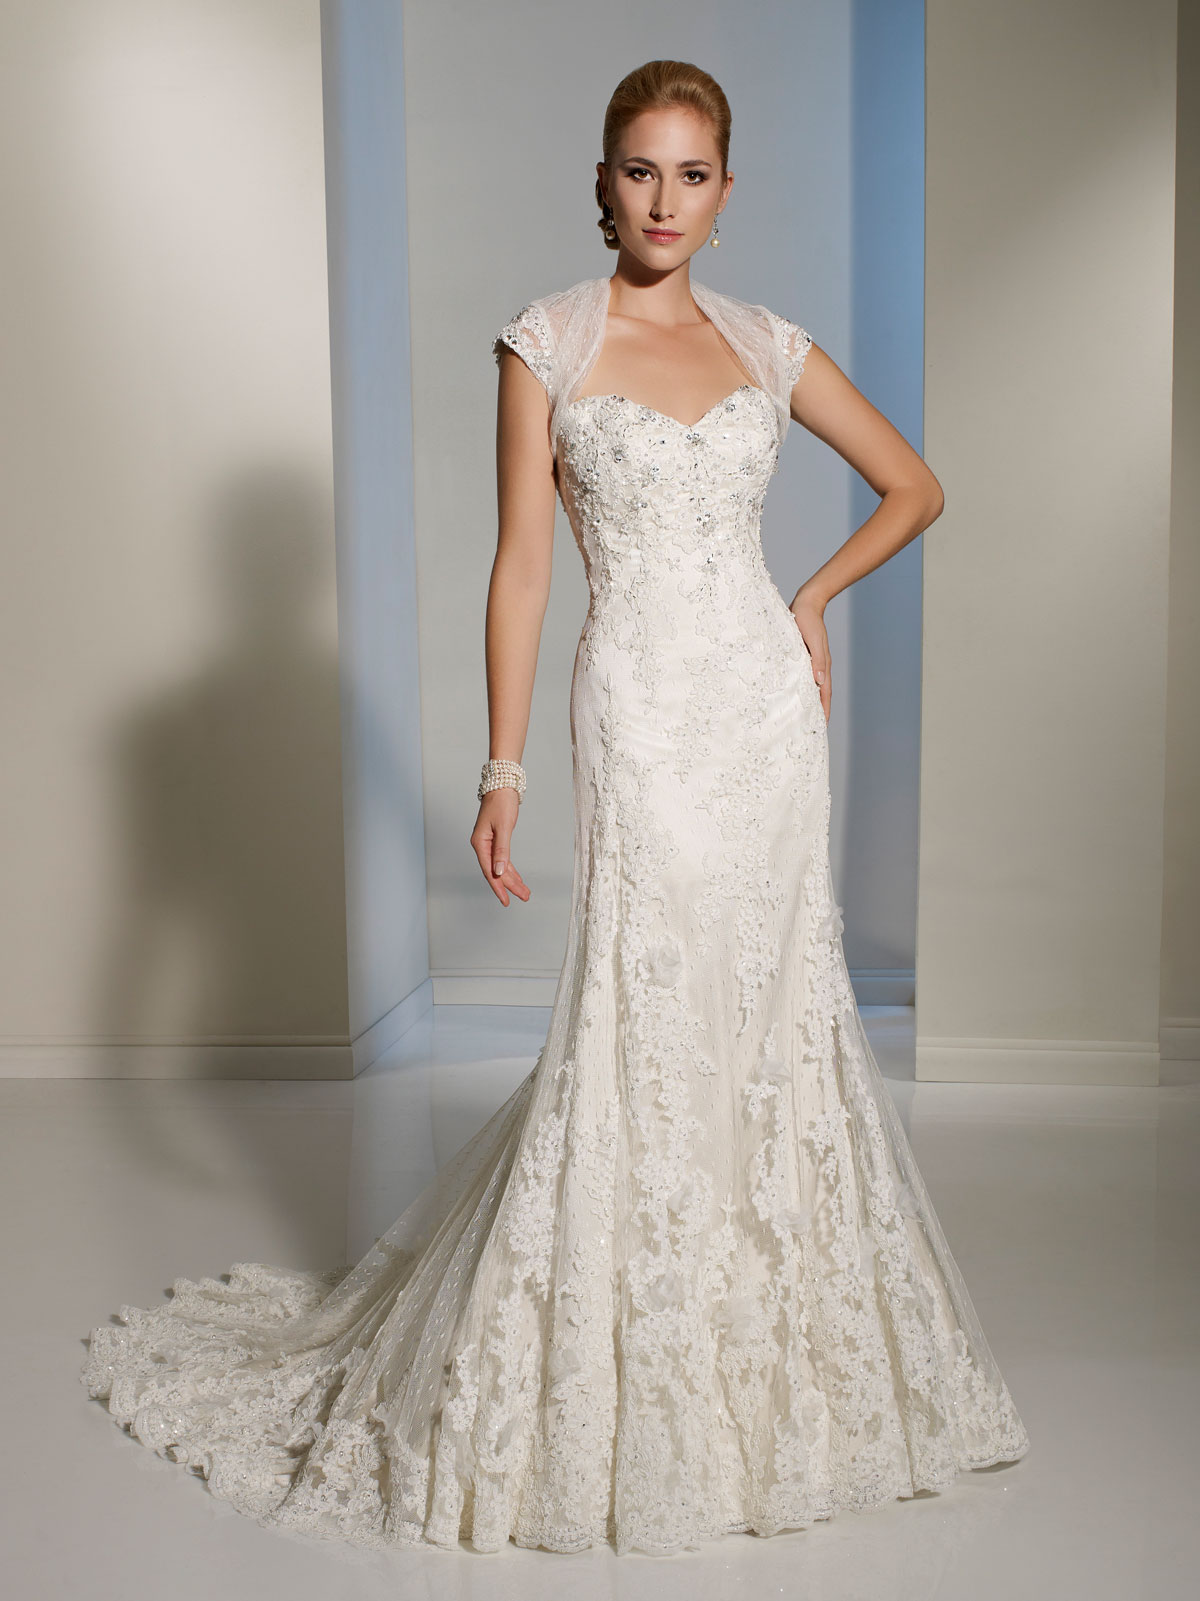 Lace Wedding Dresses Under 400 : Low priced bridal gowns at not quality